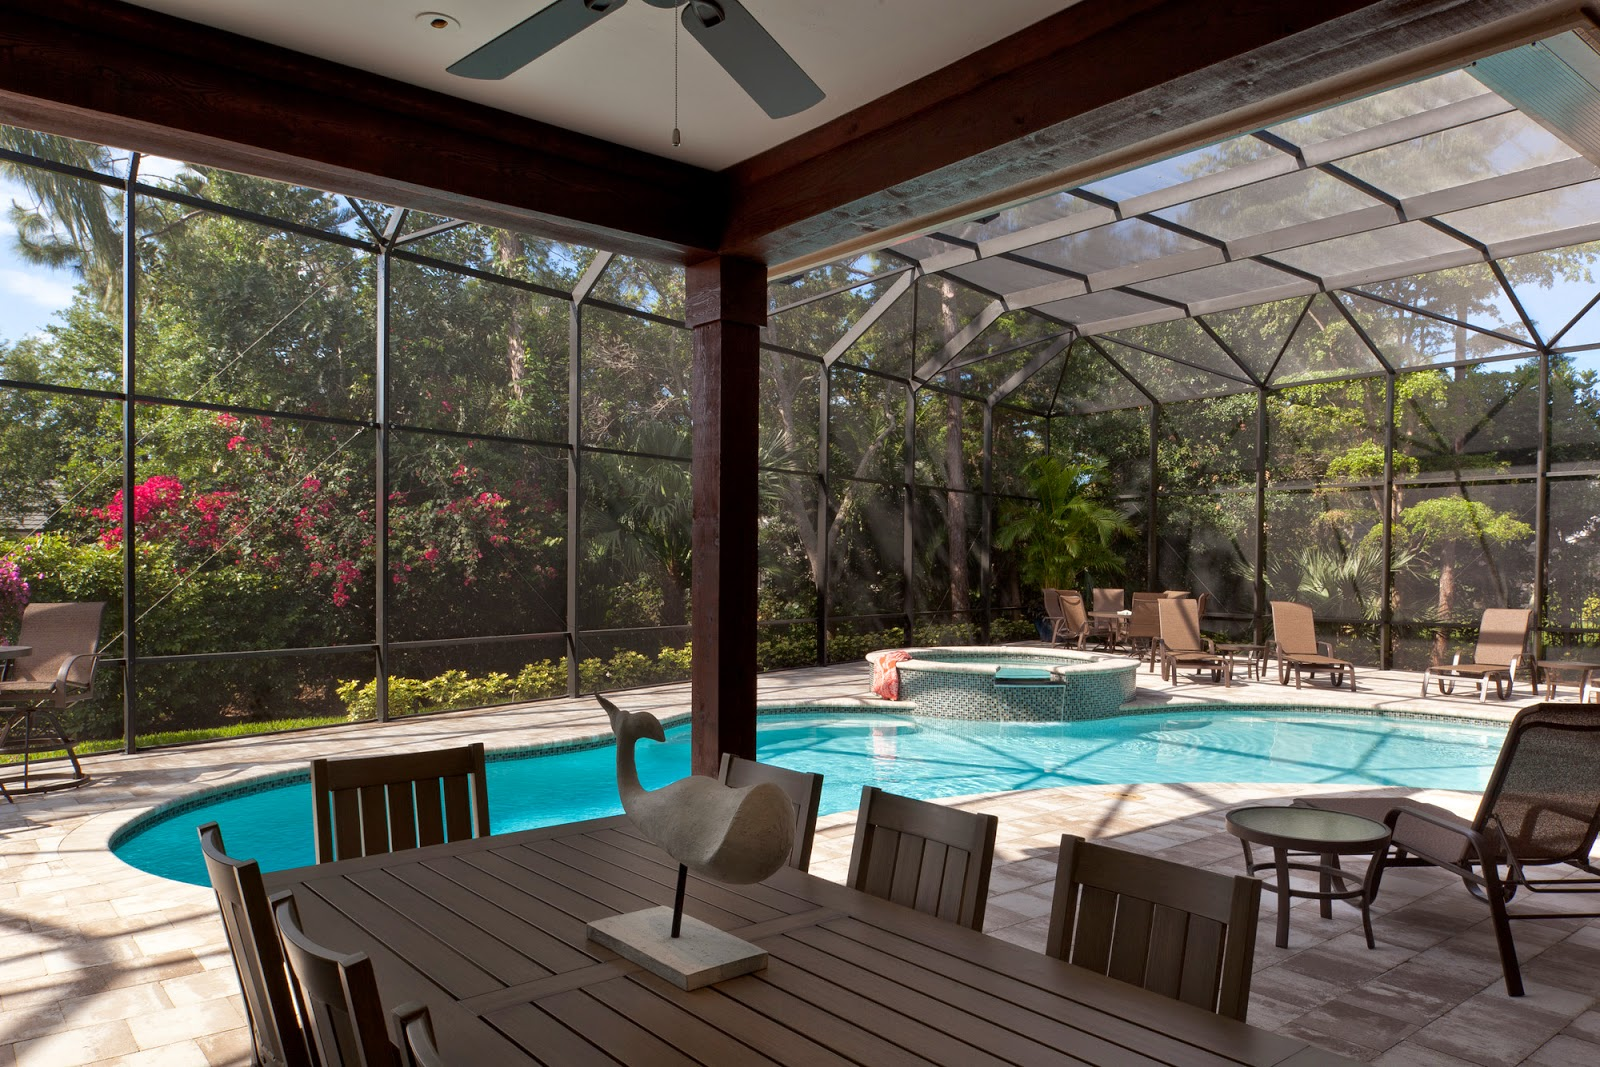 Bcbe construction llc upgrade your pool outdoor lanai for Pool lanai cost